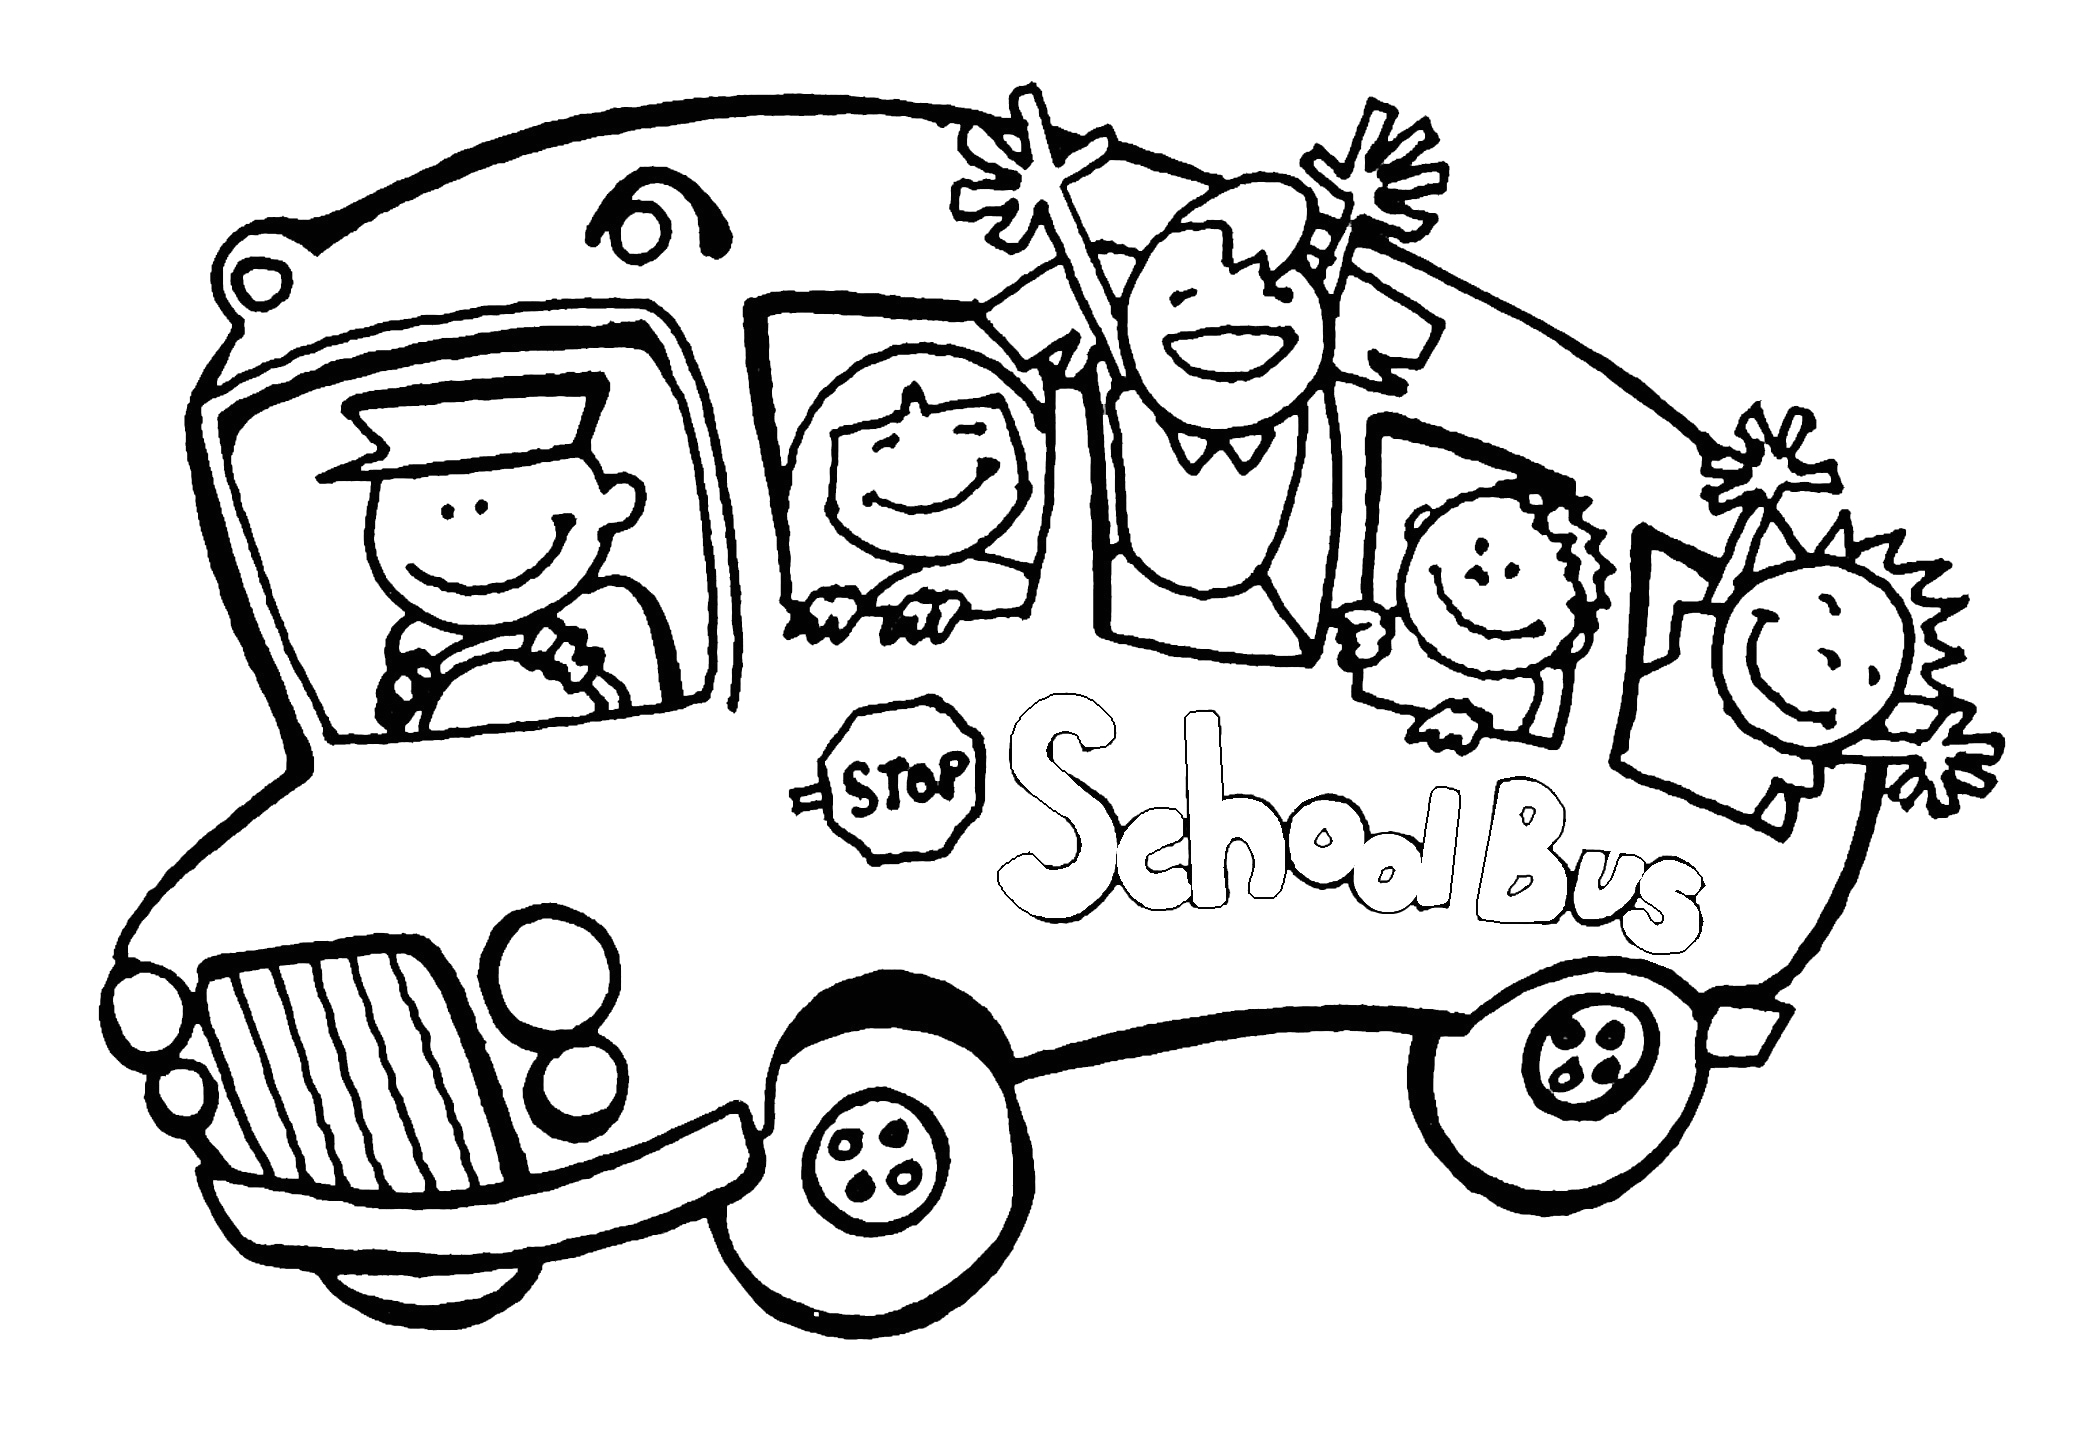 Free Coloring Pages Pdf format for Kindergarten Free Printable Kindergarten Coloring Pages for Kids